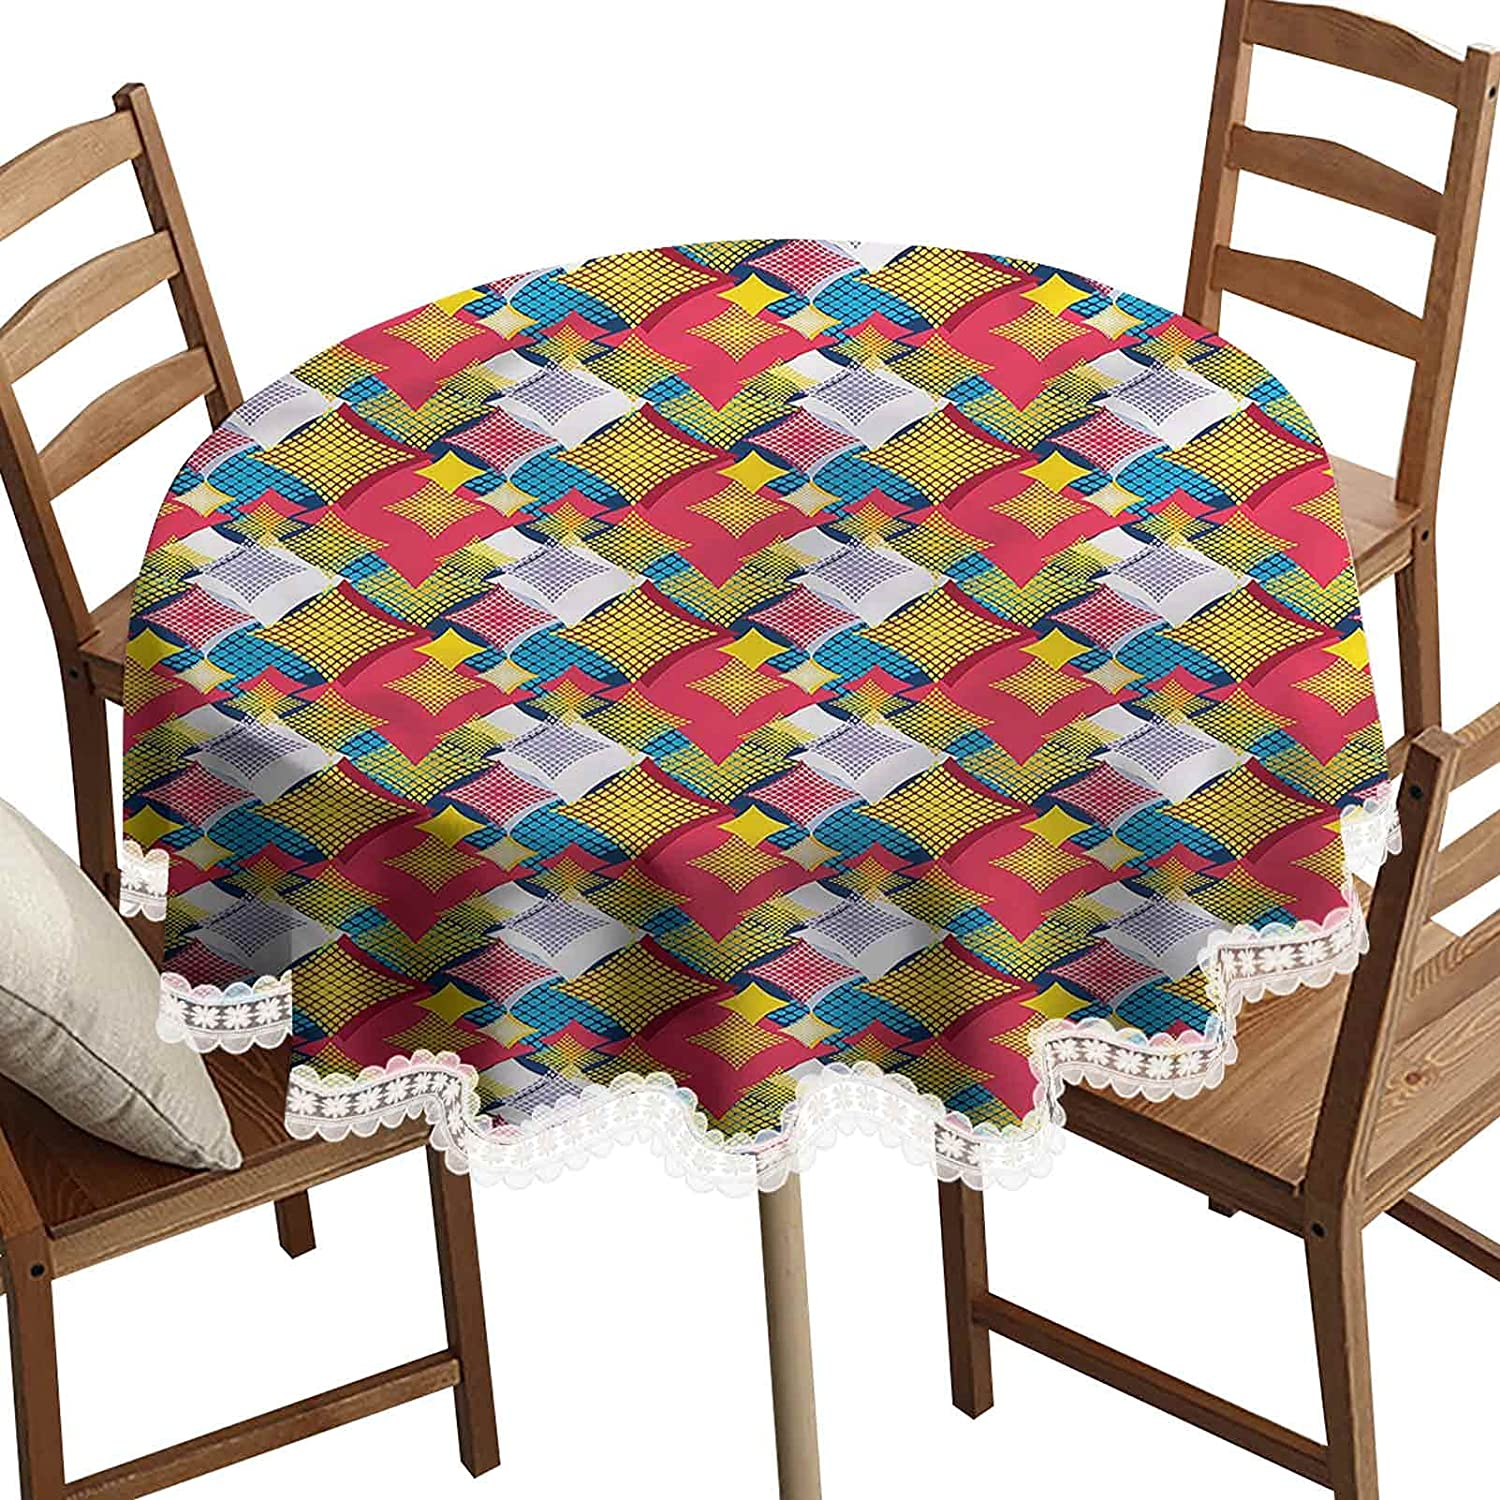 SoSung 3D Printed Round Decorative Tablecloth, Geometric Squares Dots Washable Polyester Lace Edge Table Covers, Diameter 36 Inch, for Birthday Parties, Weddings, Dining Room Tables